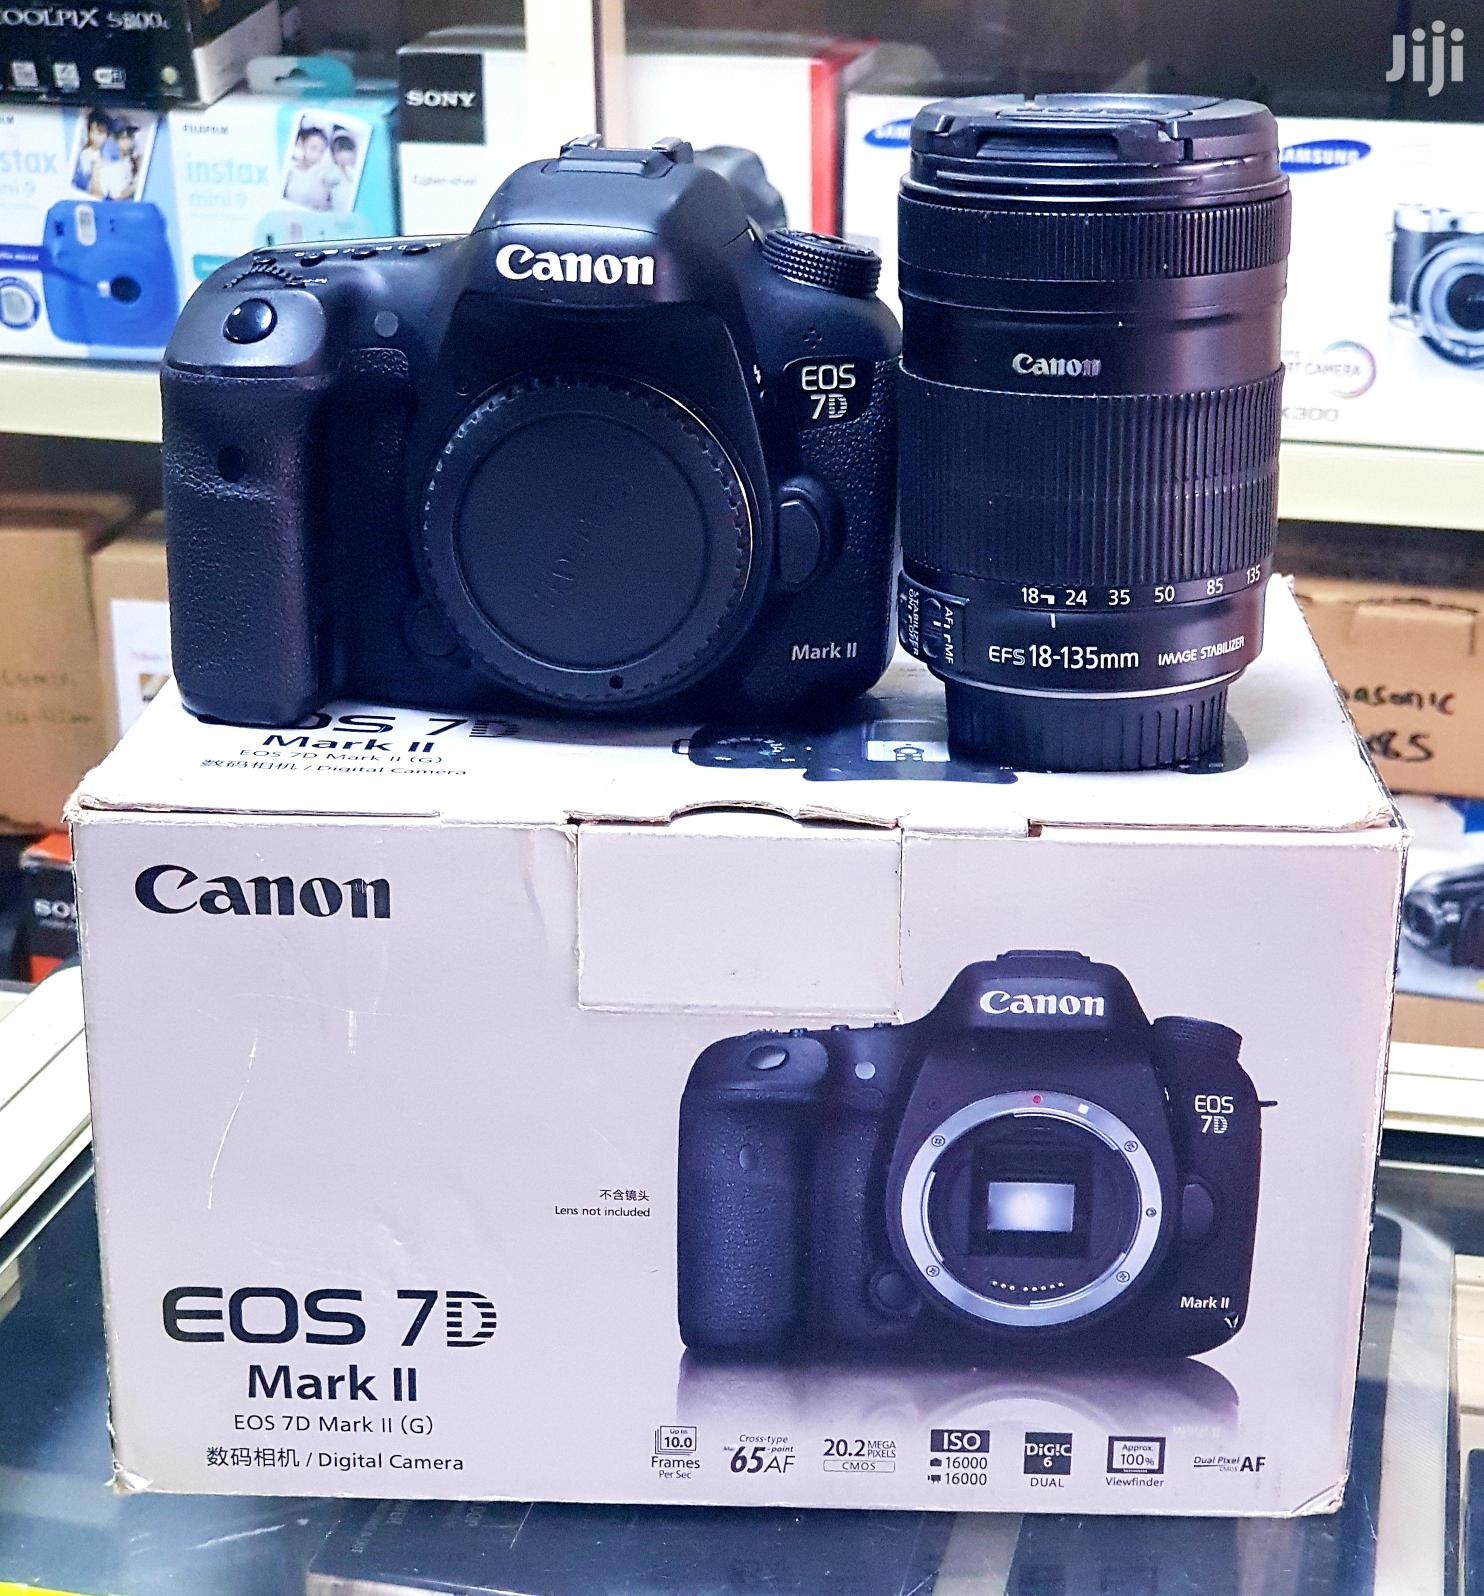 Canon DSLR Camera EOS 7D Mark II With 18-135mm Lens